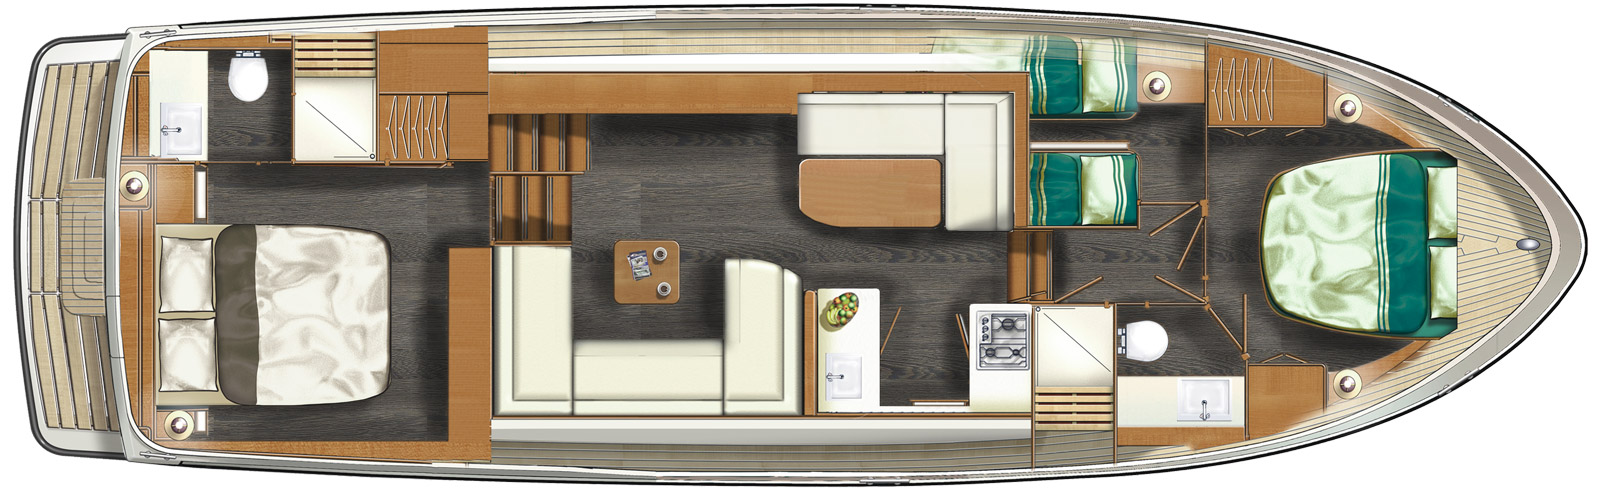 Linssen Grand Sturdy 45.0 AC layout